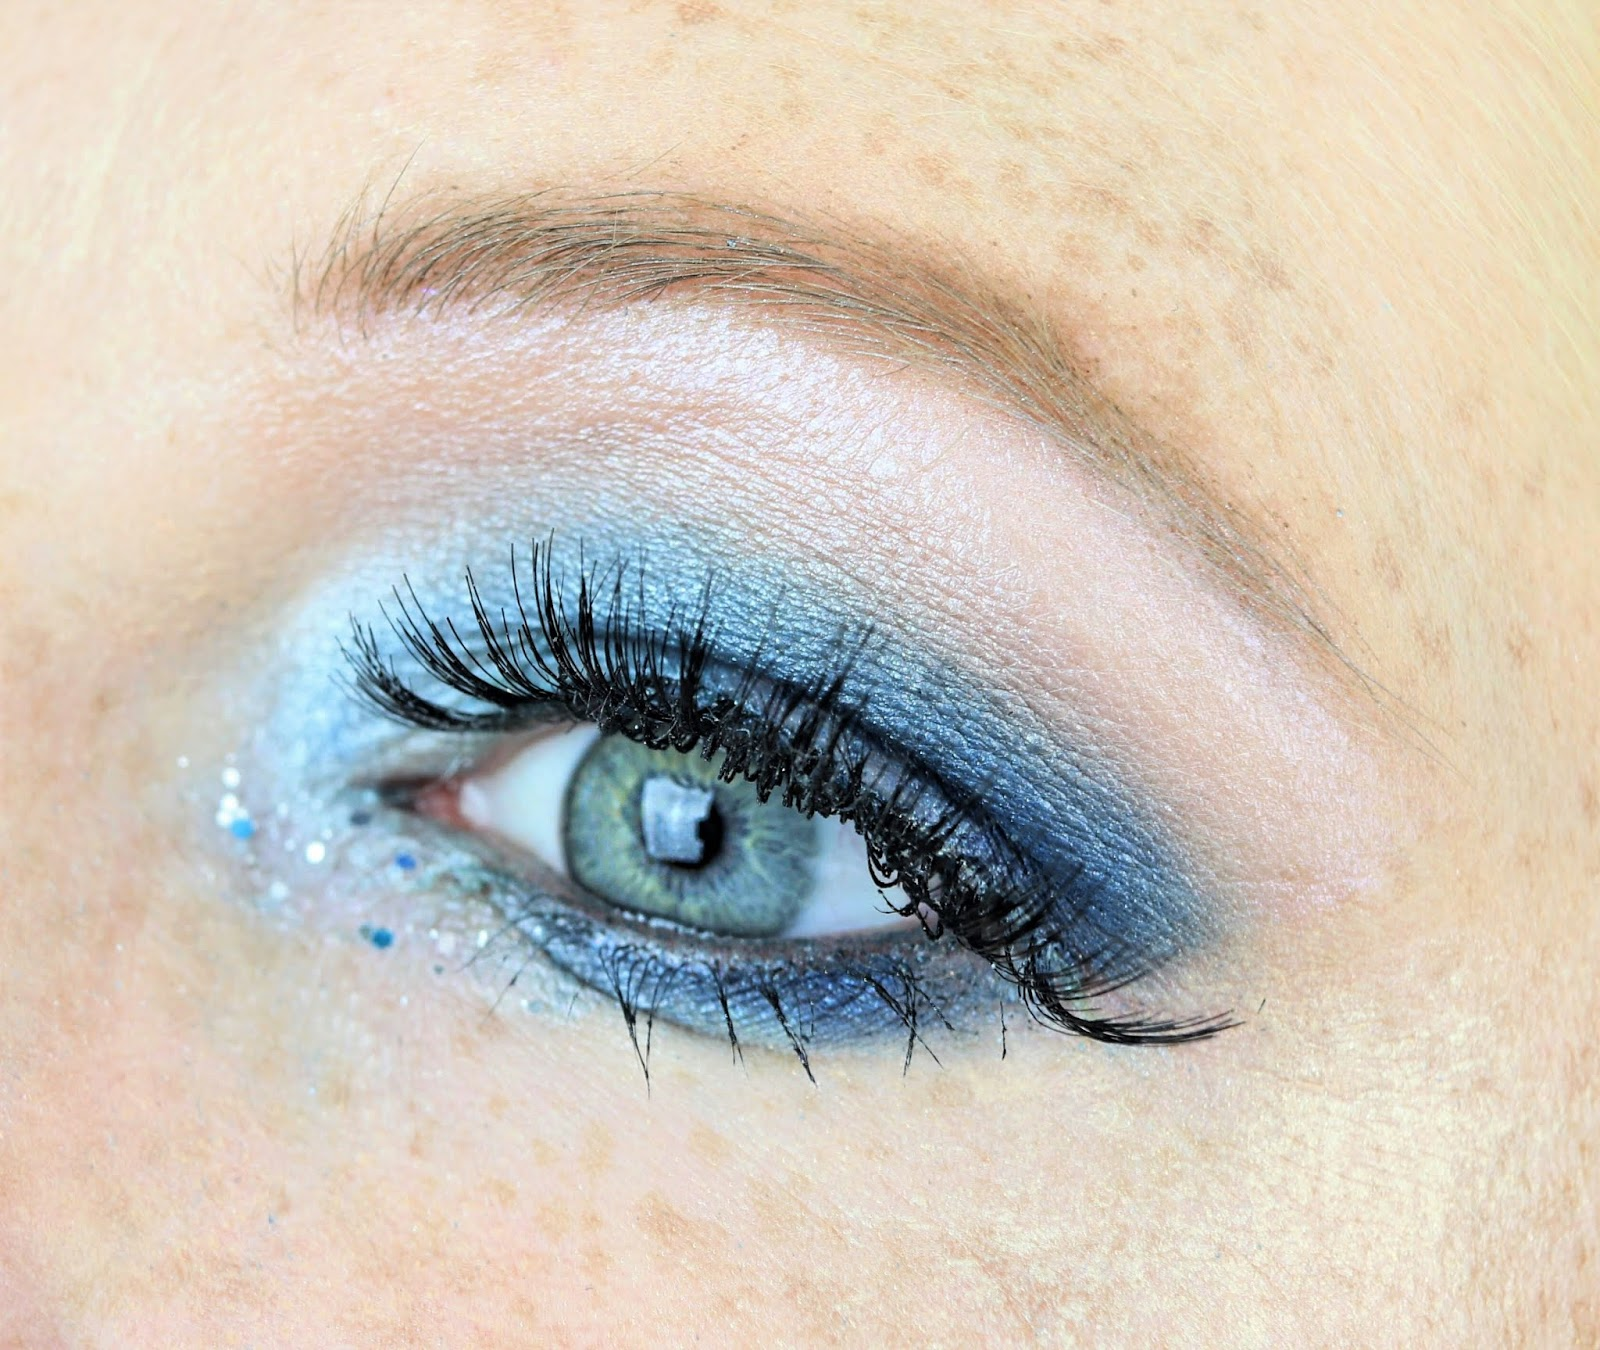 lidschatten 1×1 blau silber, blue silver, glitter, amu, lidschatten, colourpop, eyeshadow, essence, silvester look, make-up, talasia.de blogparade, primark fake lashes, liquid lipstick,